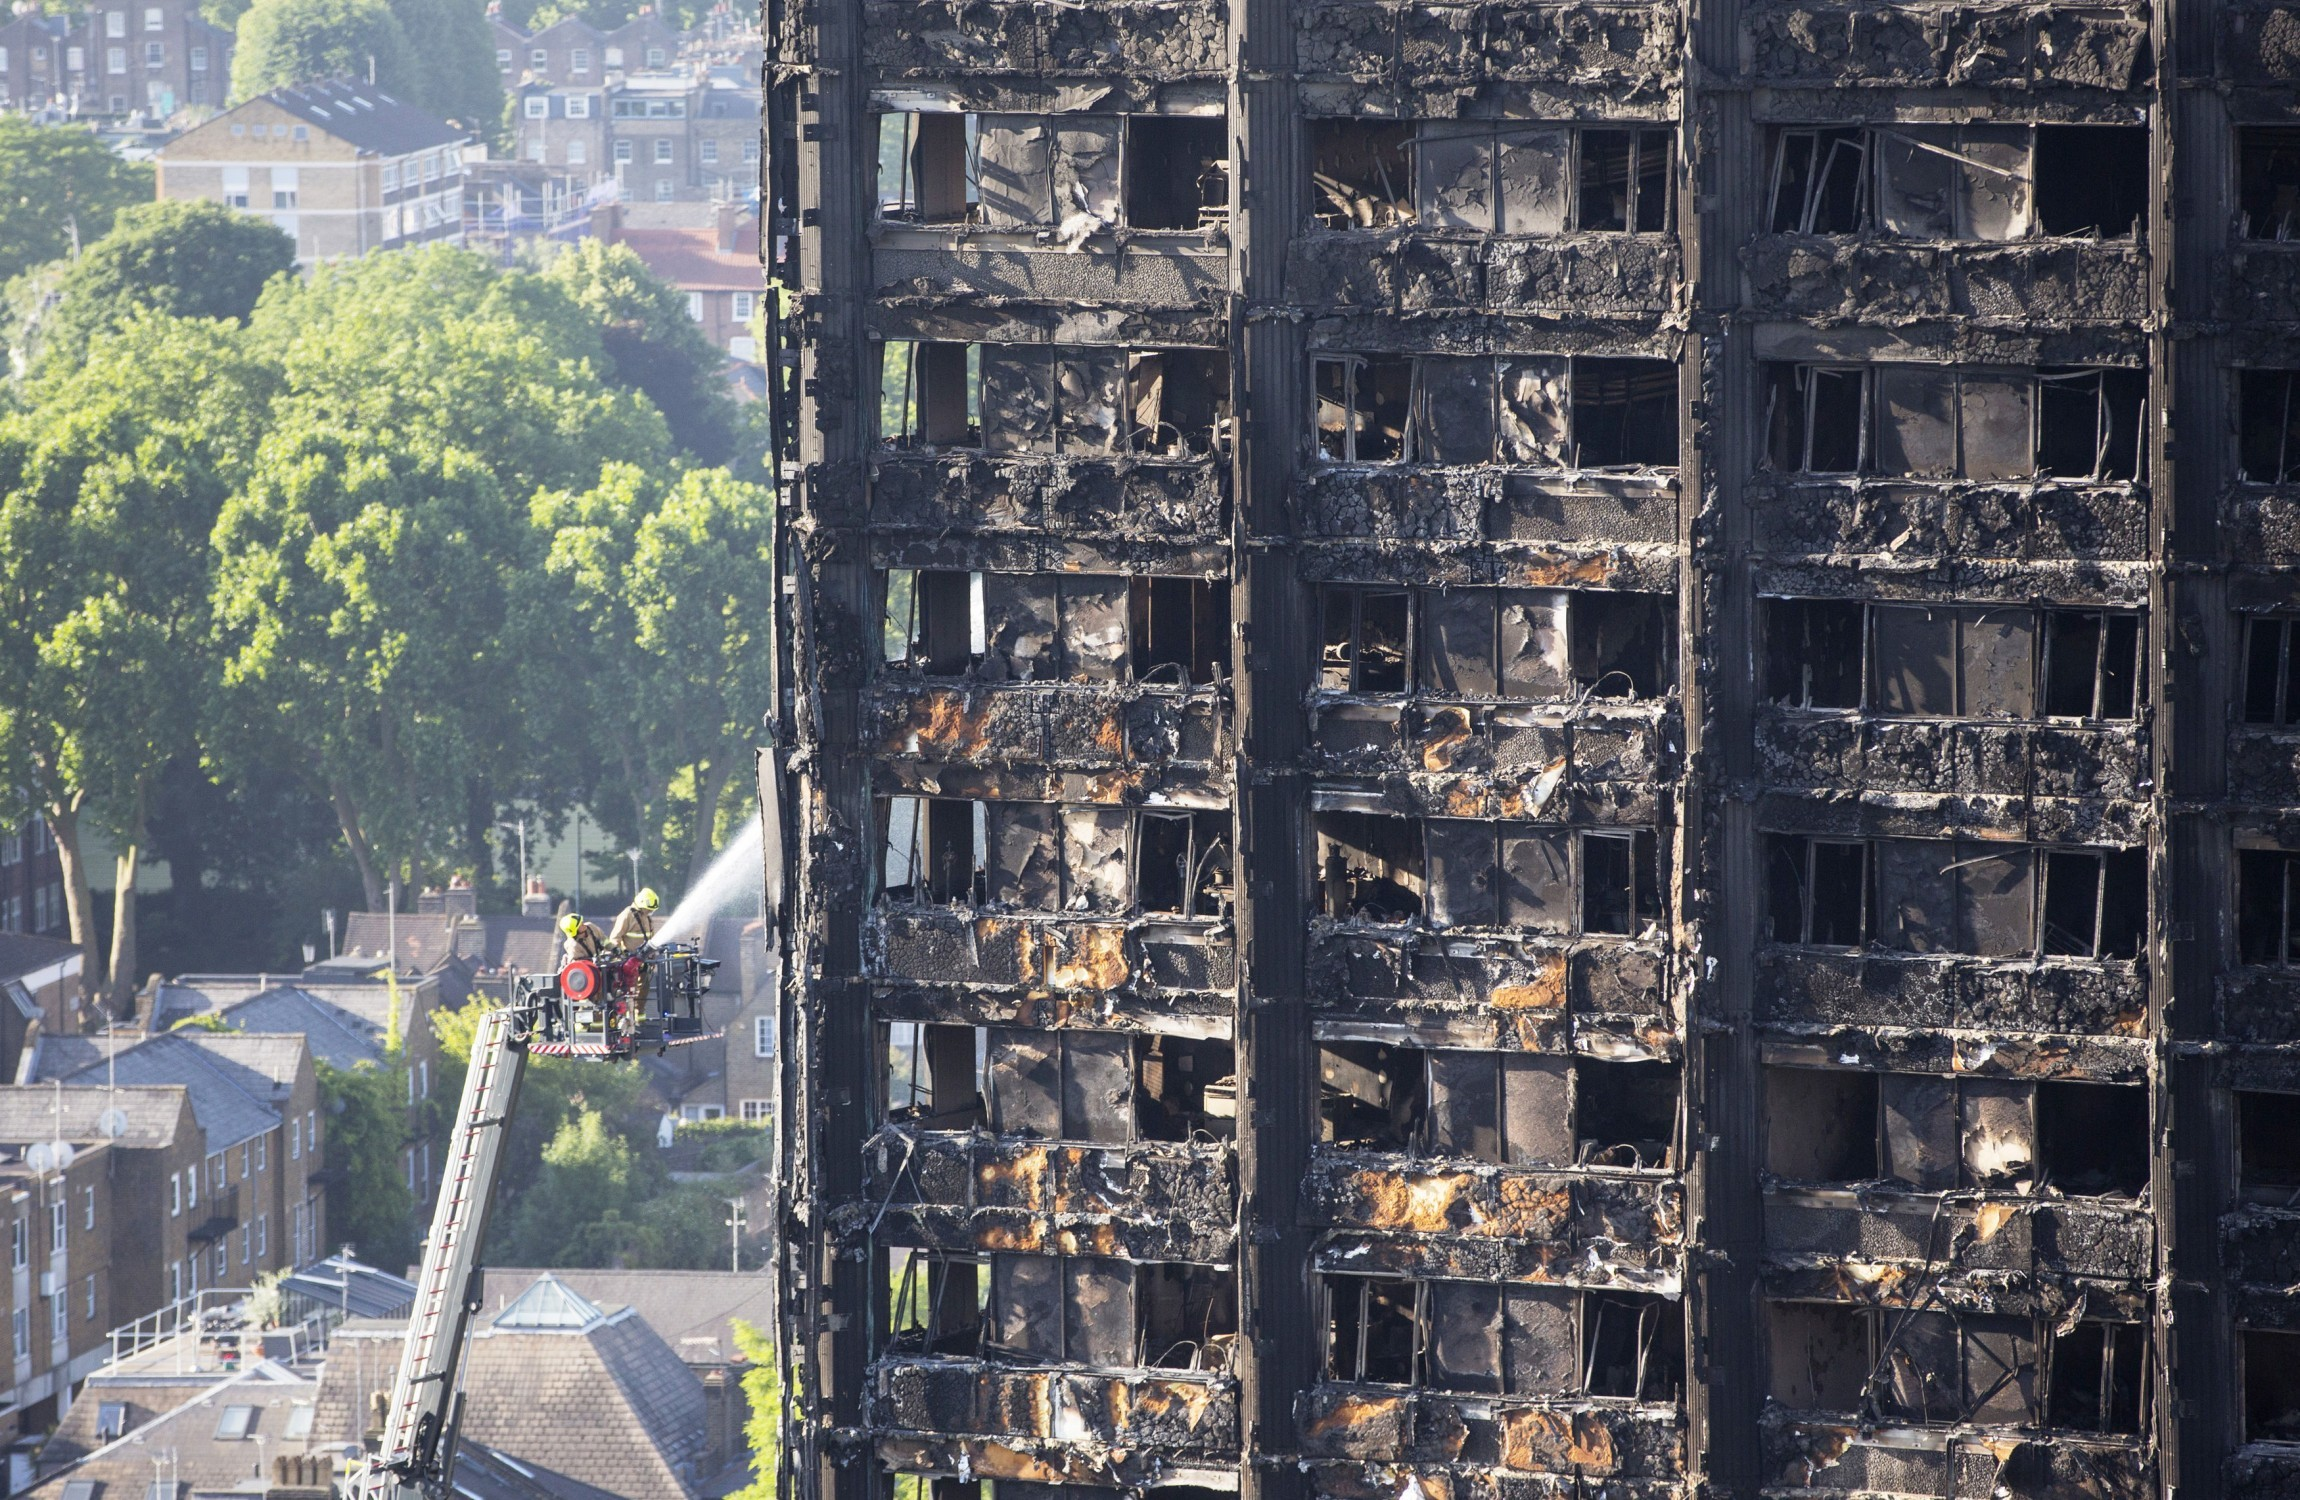 58 people in London apartment are missing and presumed dead in fire